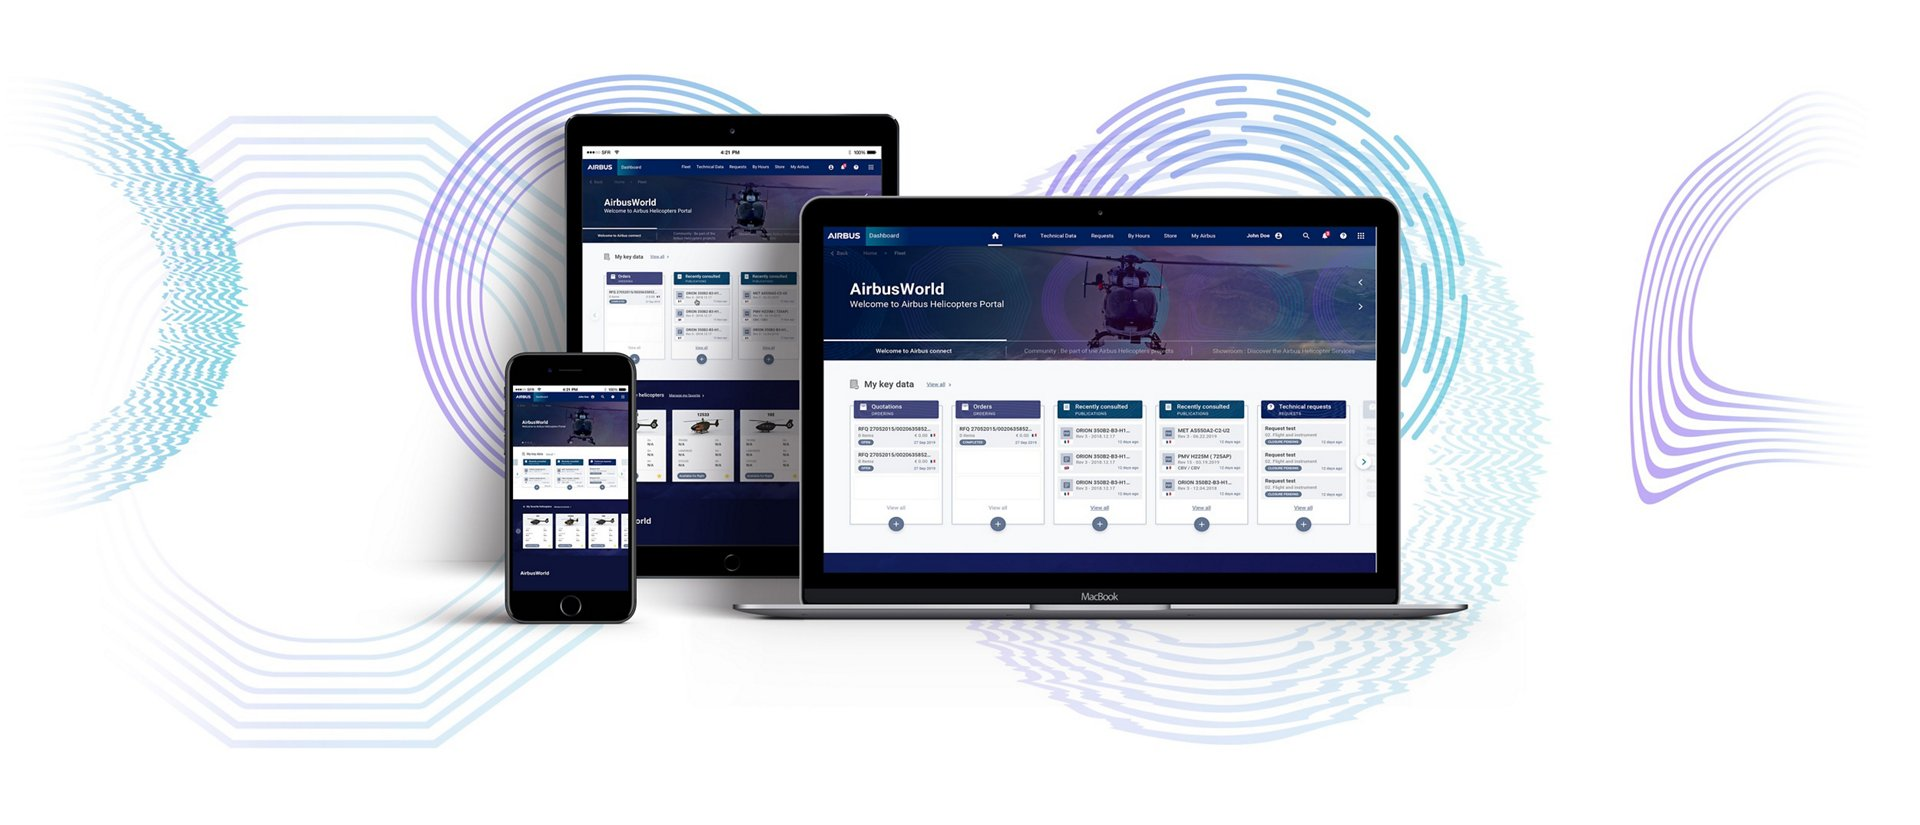 AirbusWorld offers a simplified and streamlined navigation between services, through a number of menus and shortcuts that are accessible from any page. The platform enables greater collaboration with operators through new features, such as an interactive map of Airbus Helicopters' global network of service and training centres, an online catalogue of services and software, and online communities that foster open dialogue.